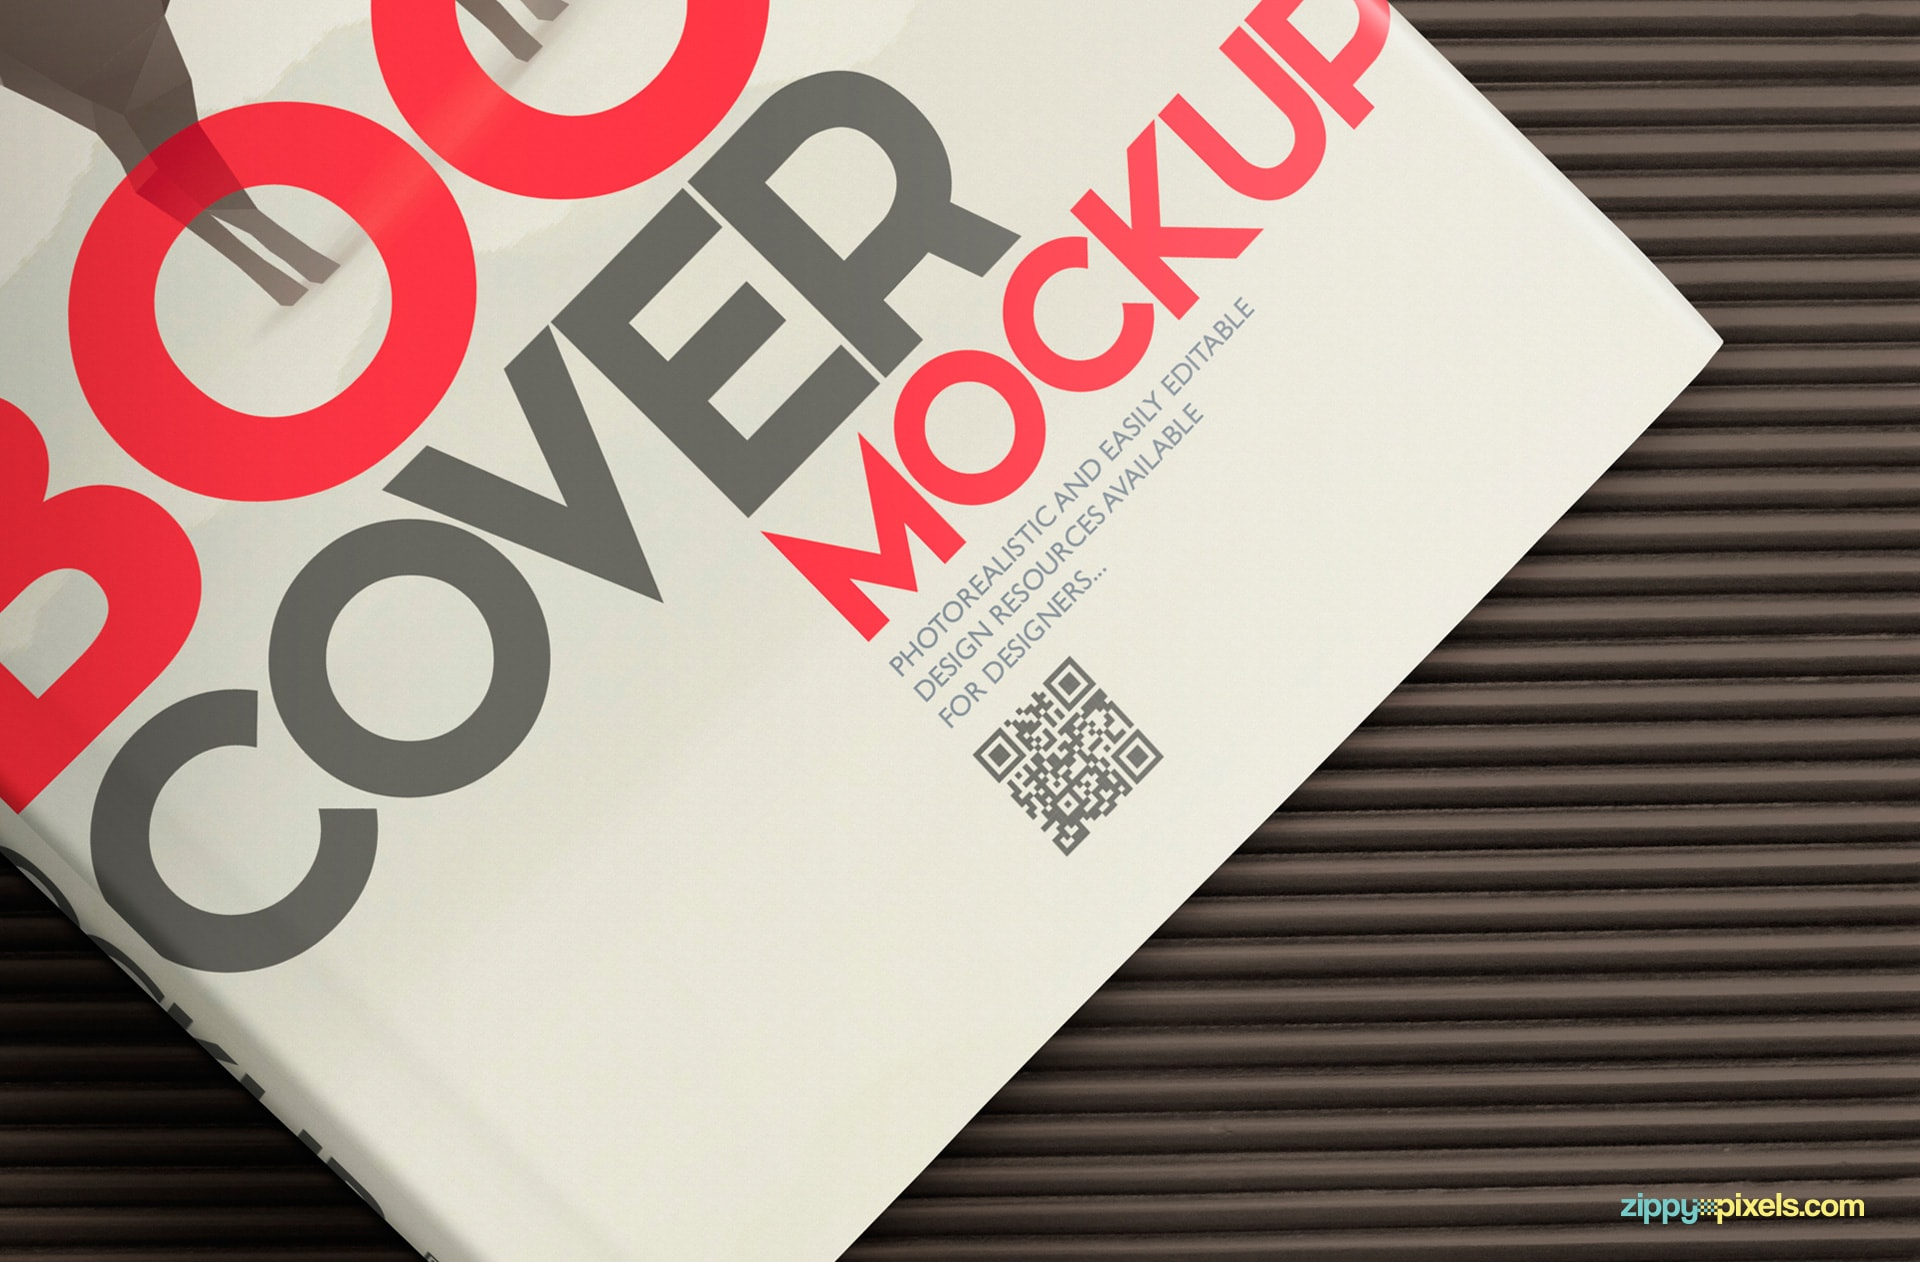 Free-Book-Mockup-Closeup-view-of-hardcover-book-824x542